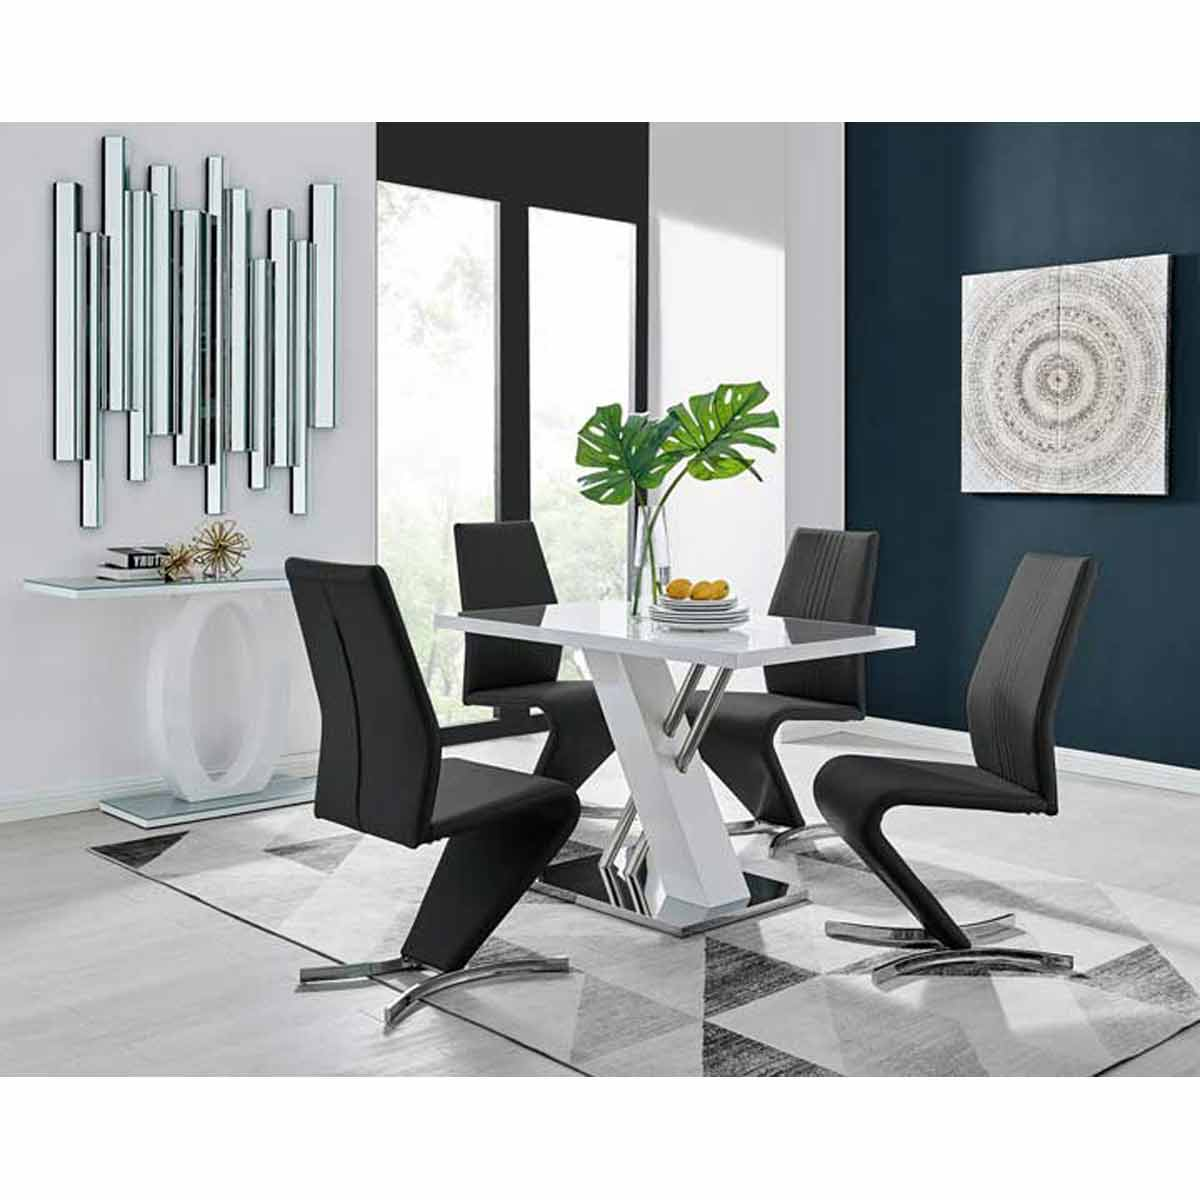 Furniture Box Sorrento 4 White High Gloss And Stainless Steel Dining Table And 4 Luxury Black Willow Chairs Set